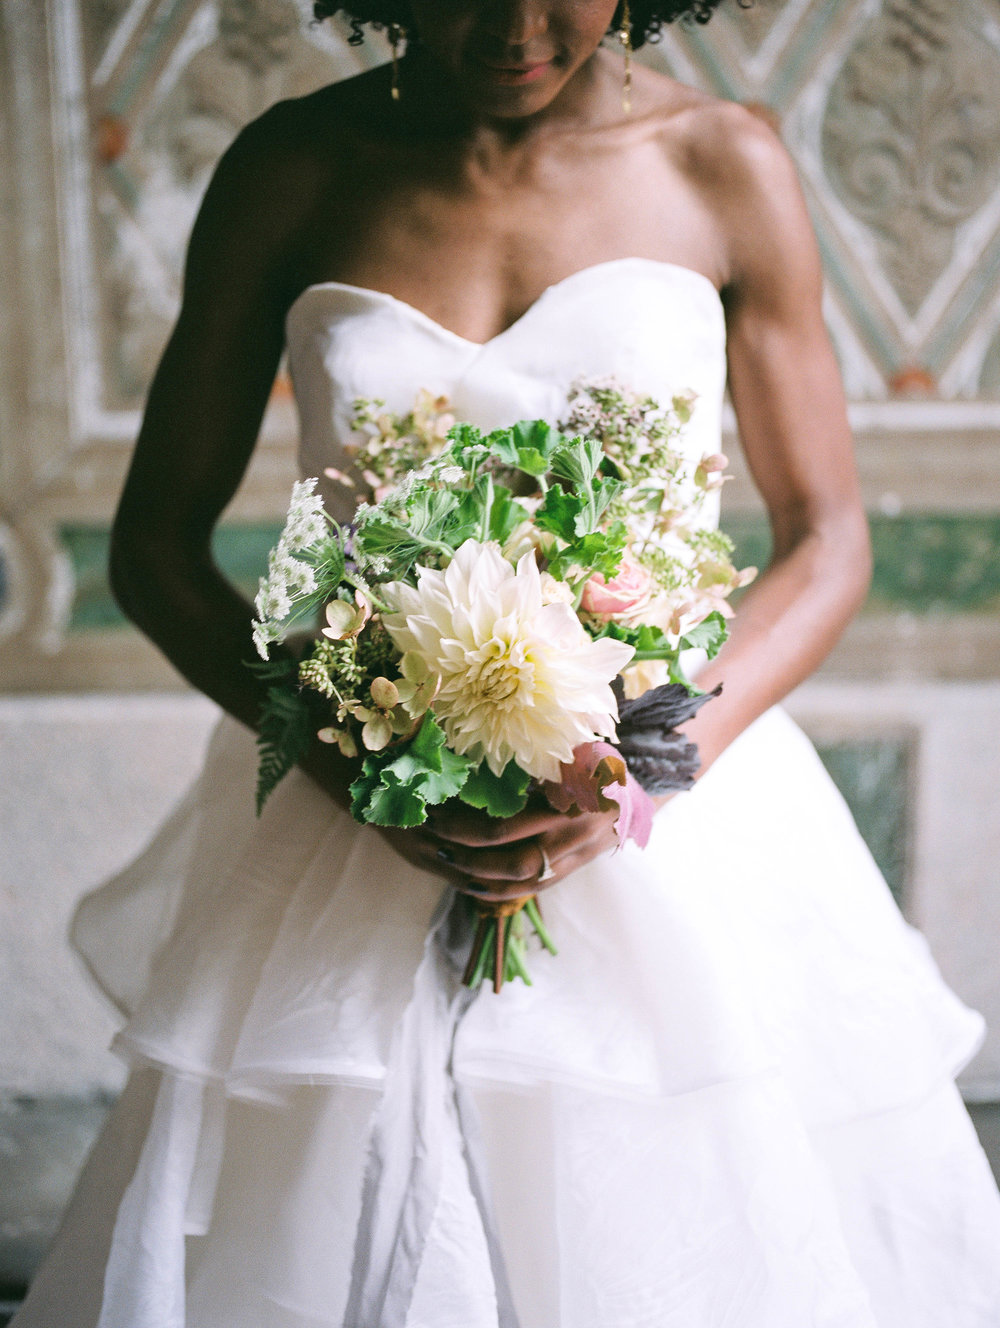 Wedding Bouquet Inspiration - www.jleephotos.com